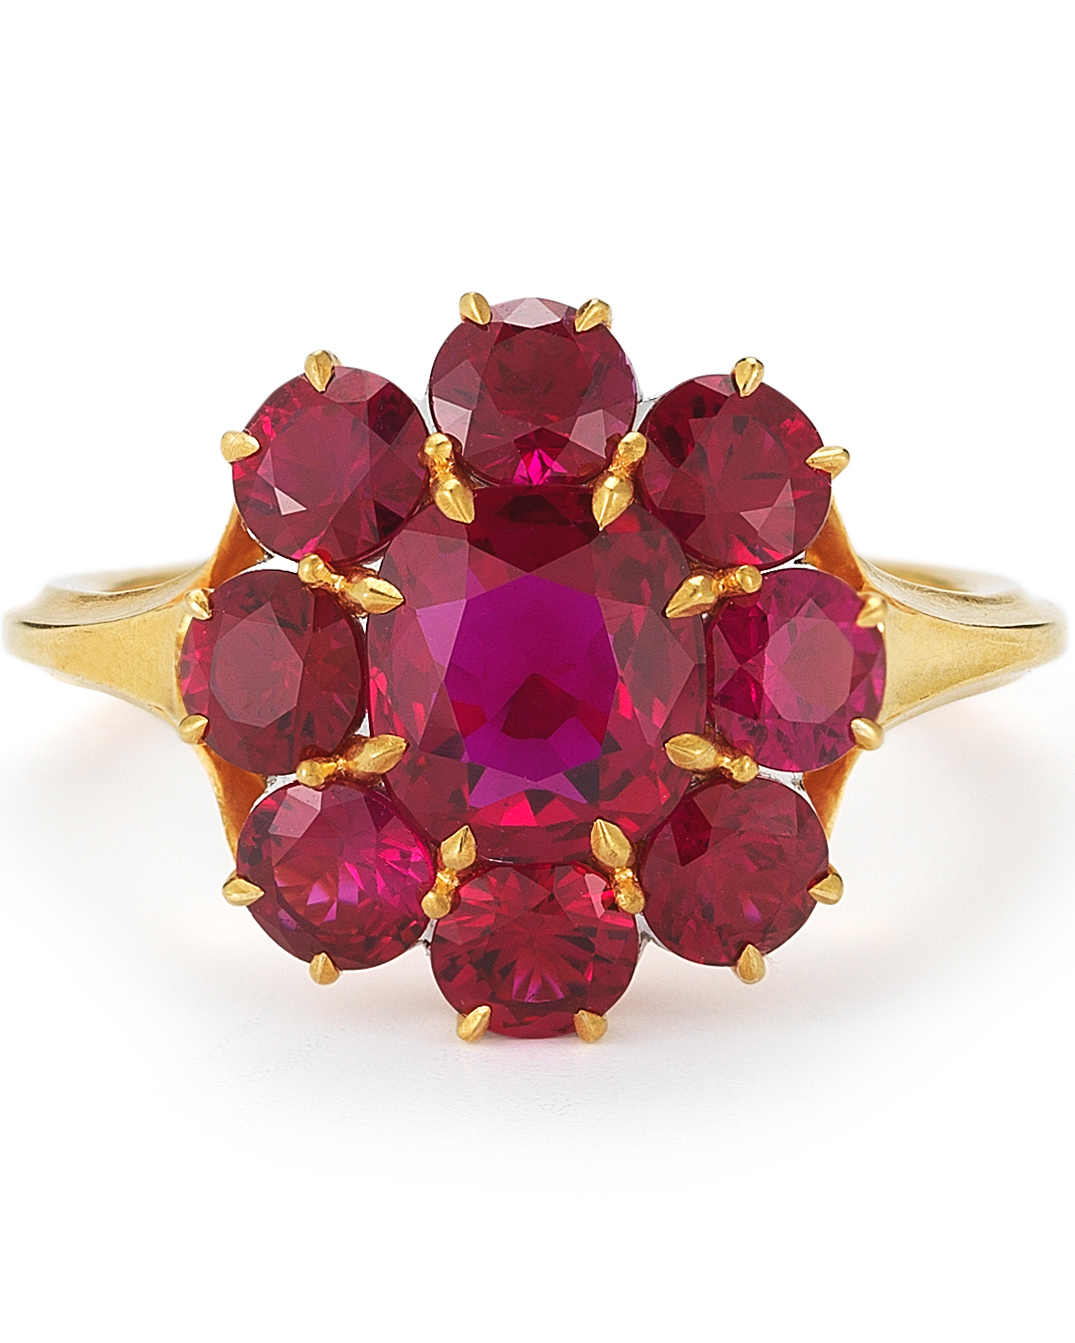 mcteigue-mclelland-ruby-engagement-ring-berry-cluster-gold-band-0816.jpg